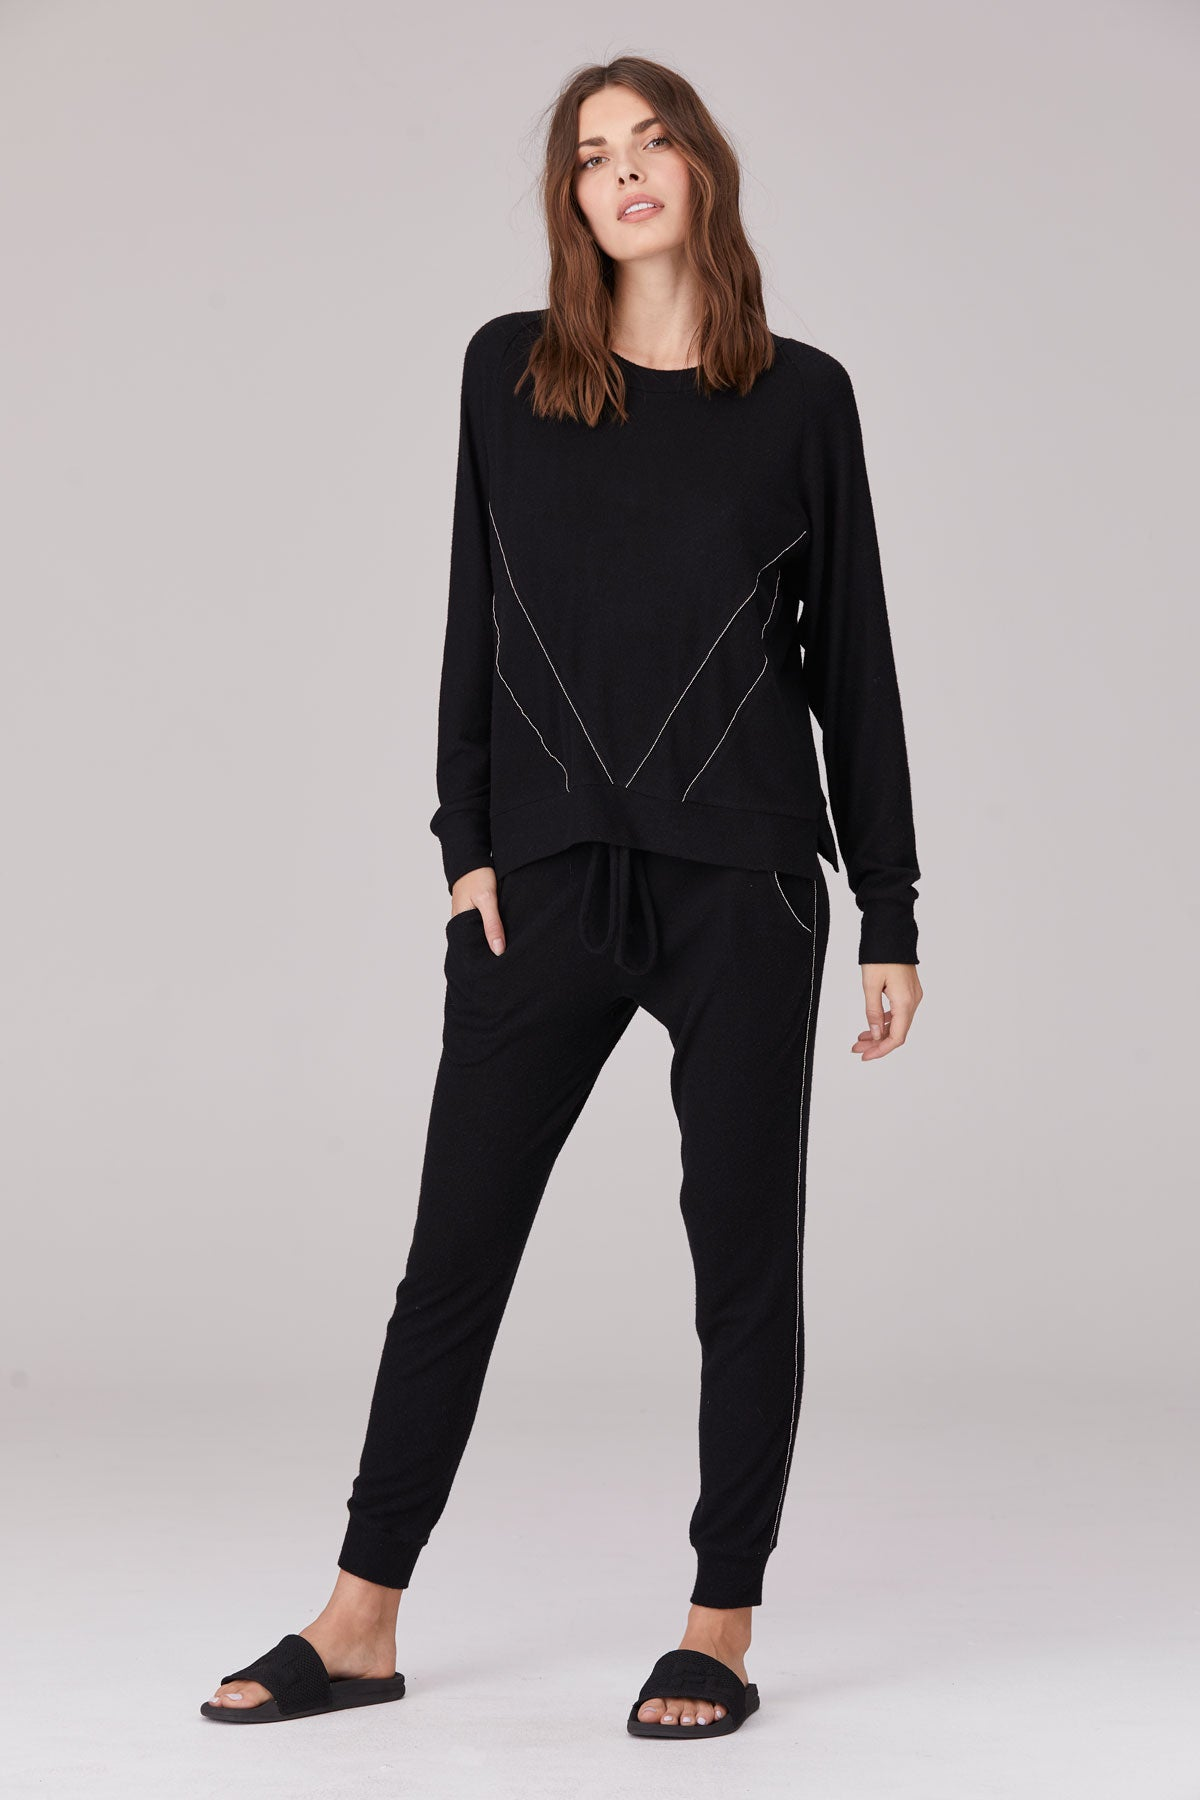 LNA Brushed Taurus Pant in Black